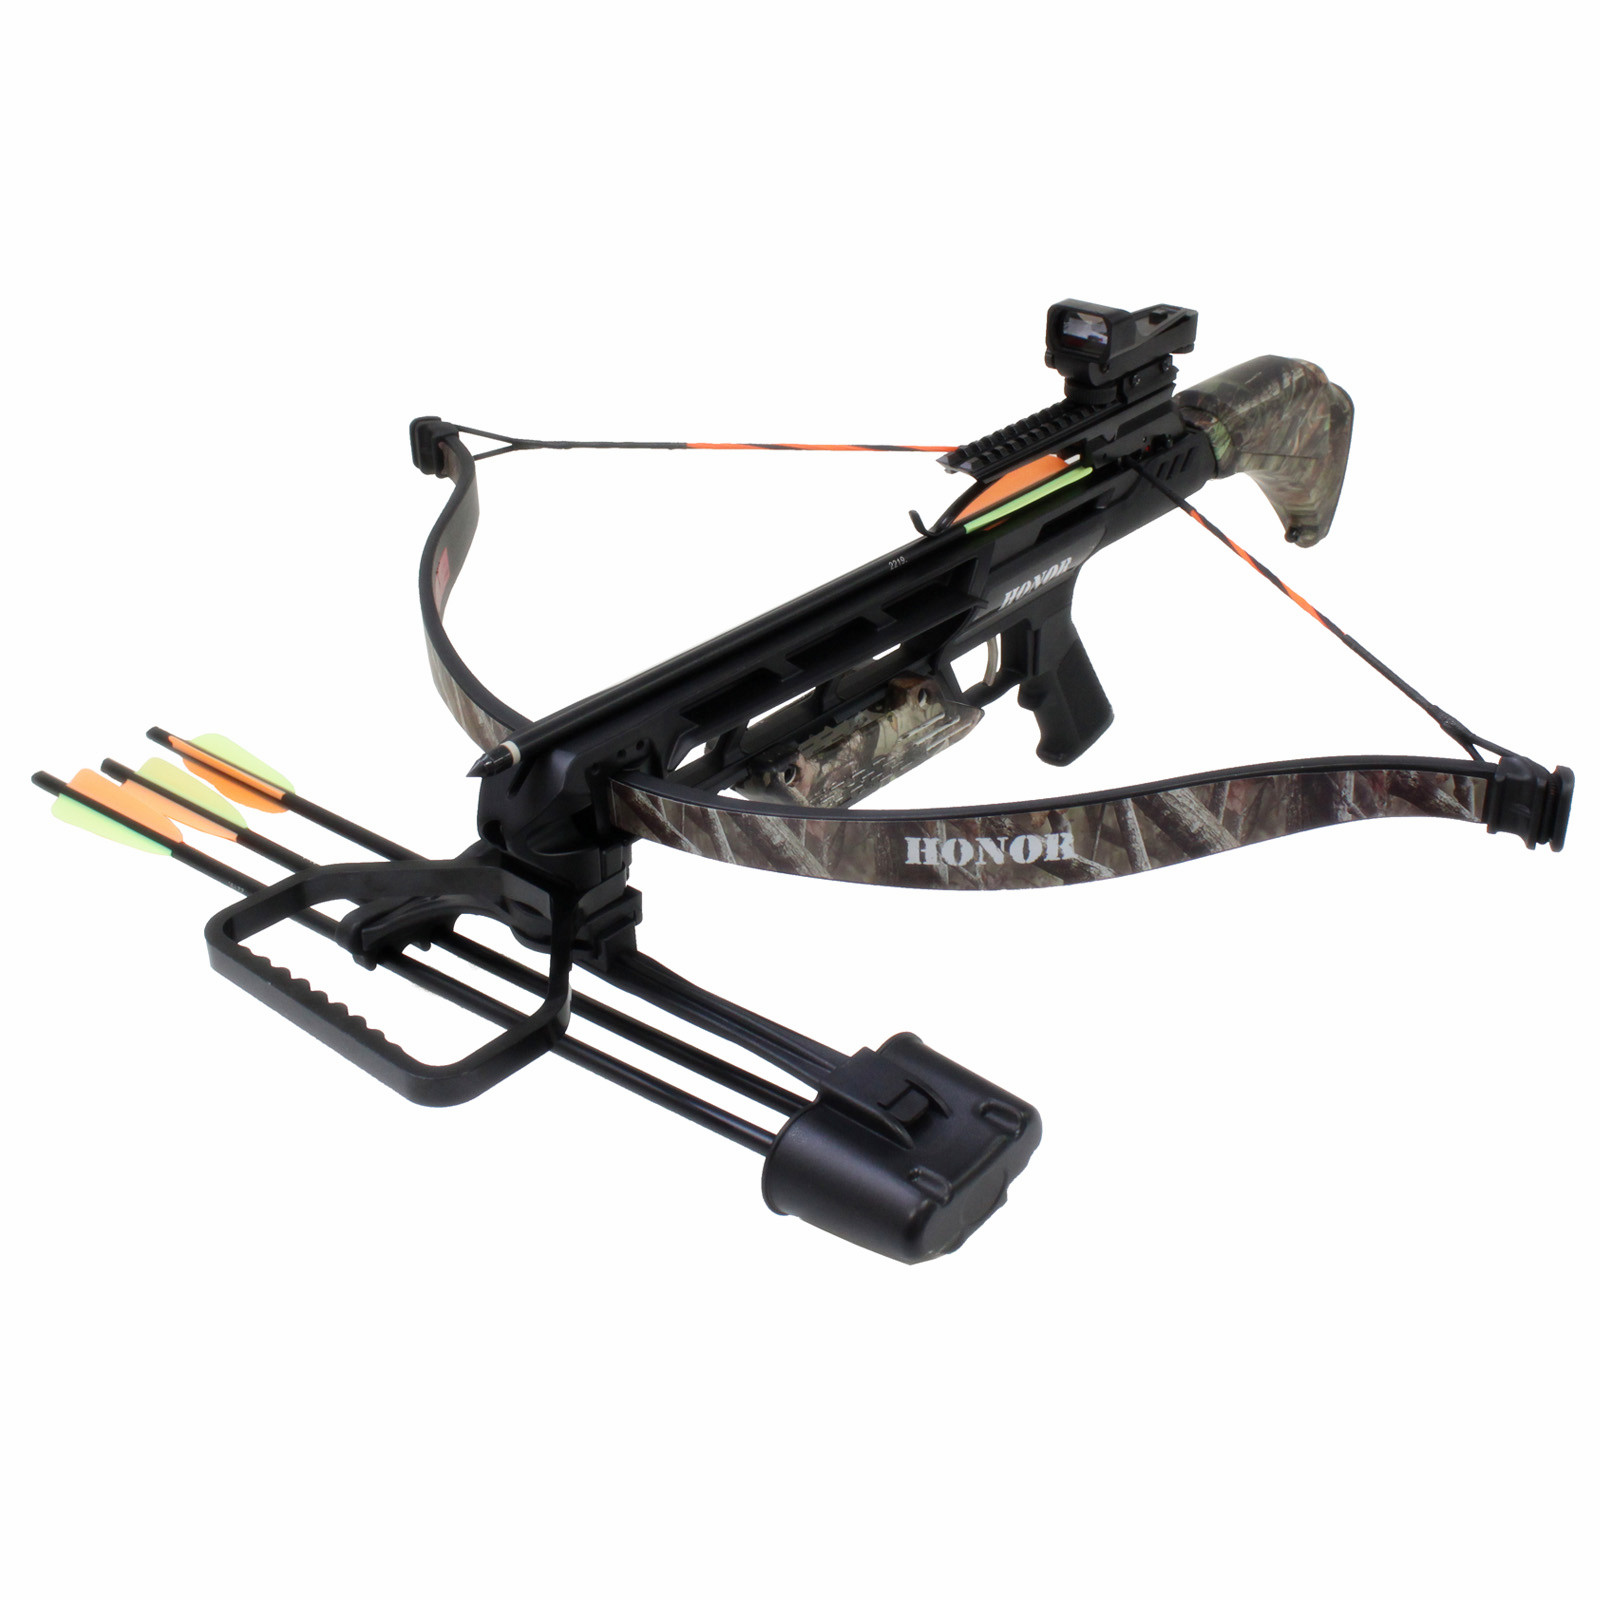 SAS Honor 175 lbs Recurve Crossbow Red Dot Scope Package ...